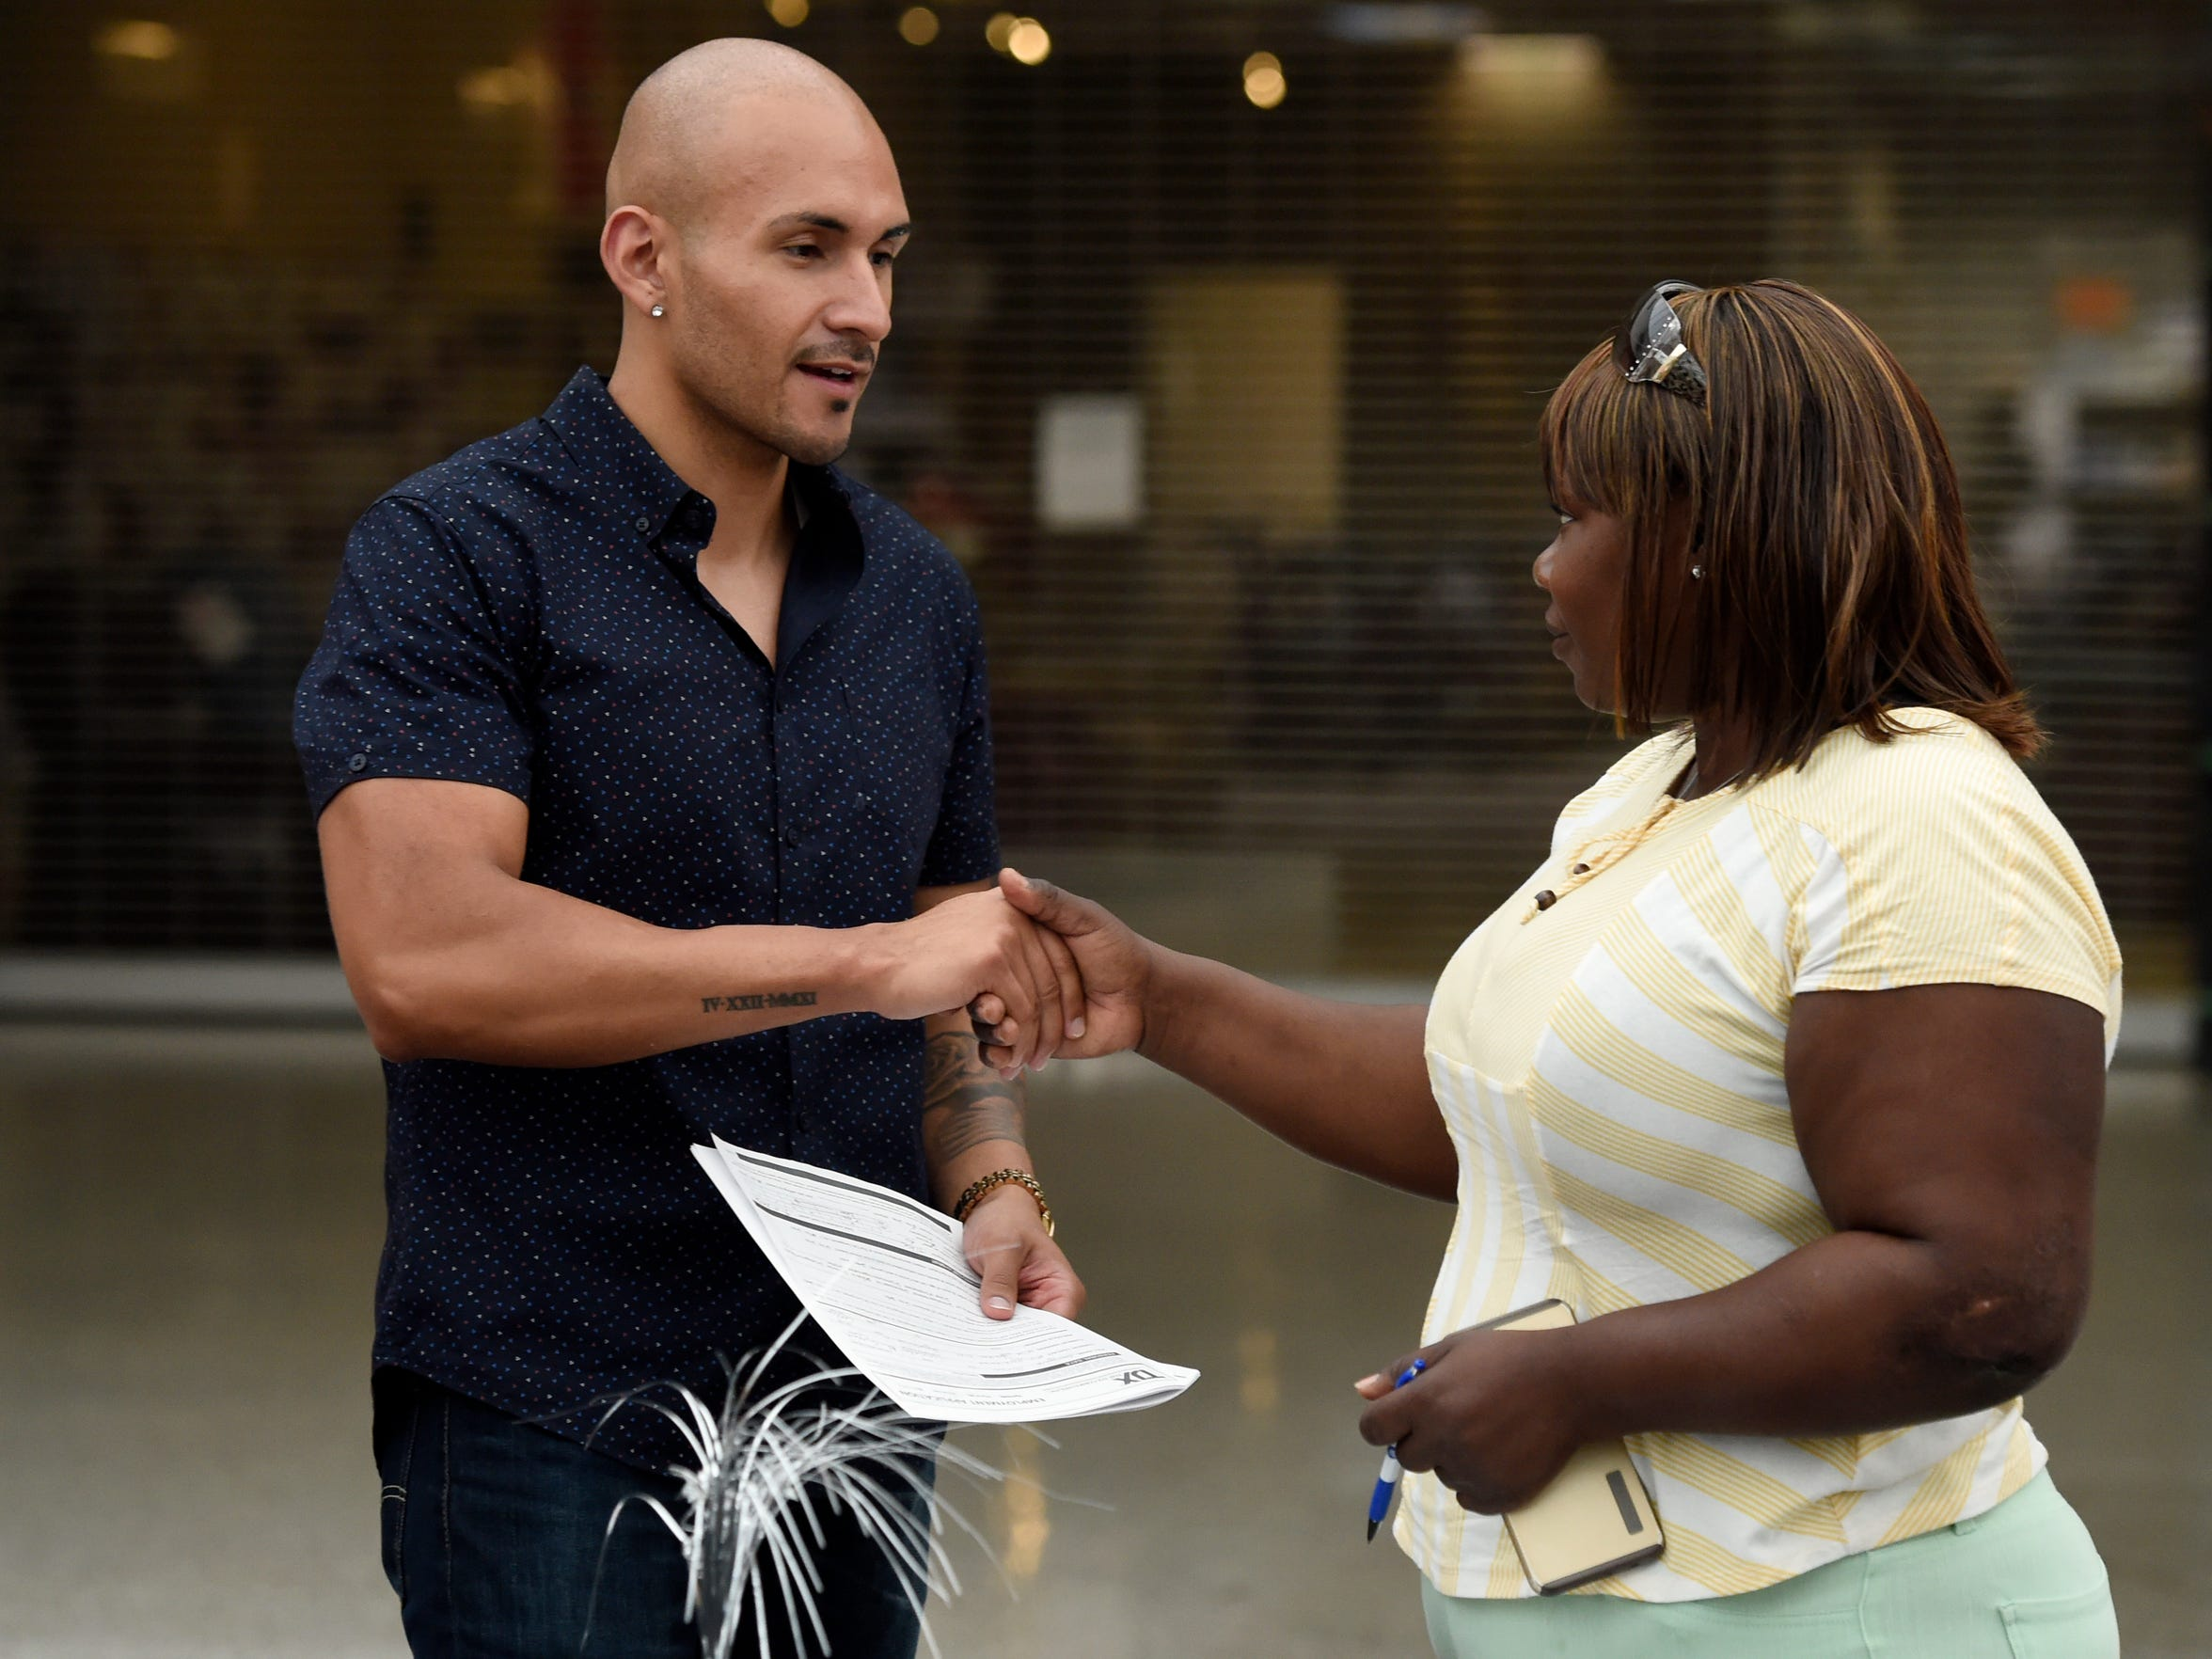 Marianie Sanon shakes hands with Manny Medina after filling out a job application at Washington Square Mall in Evansville recently.   Sanon was one of 21 Haitian passengers injured when the van they were being transported in wrecked on Interstate 69 while traveling to their worksite on Sept., 24, 2015. Two passengers died and several others, including Sanon, were severely injured.